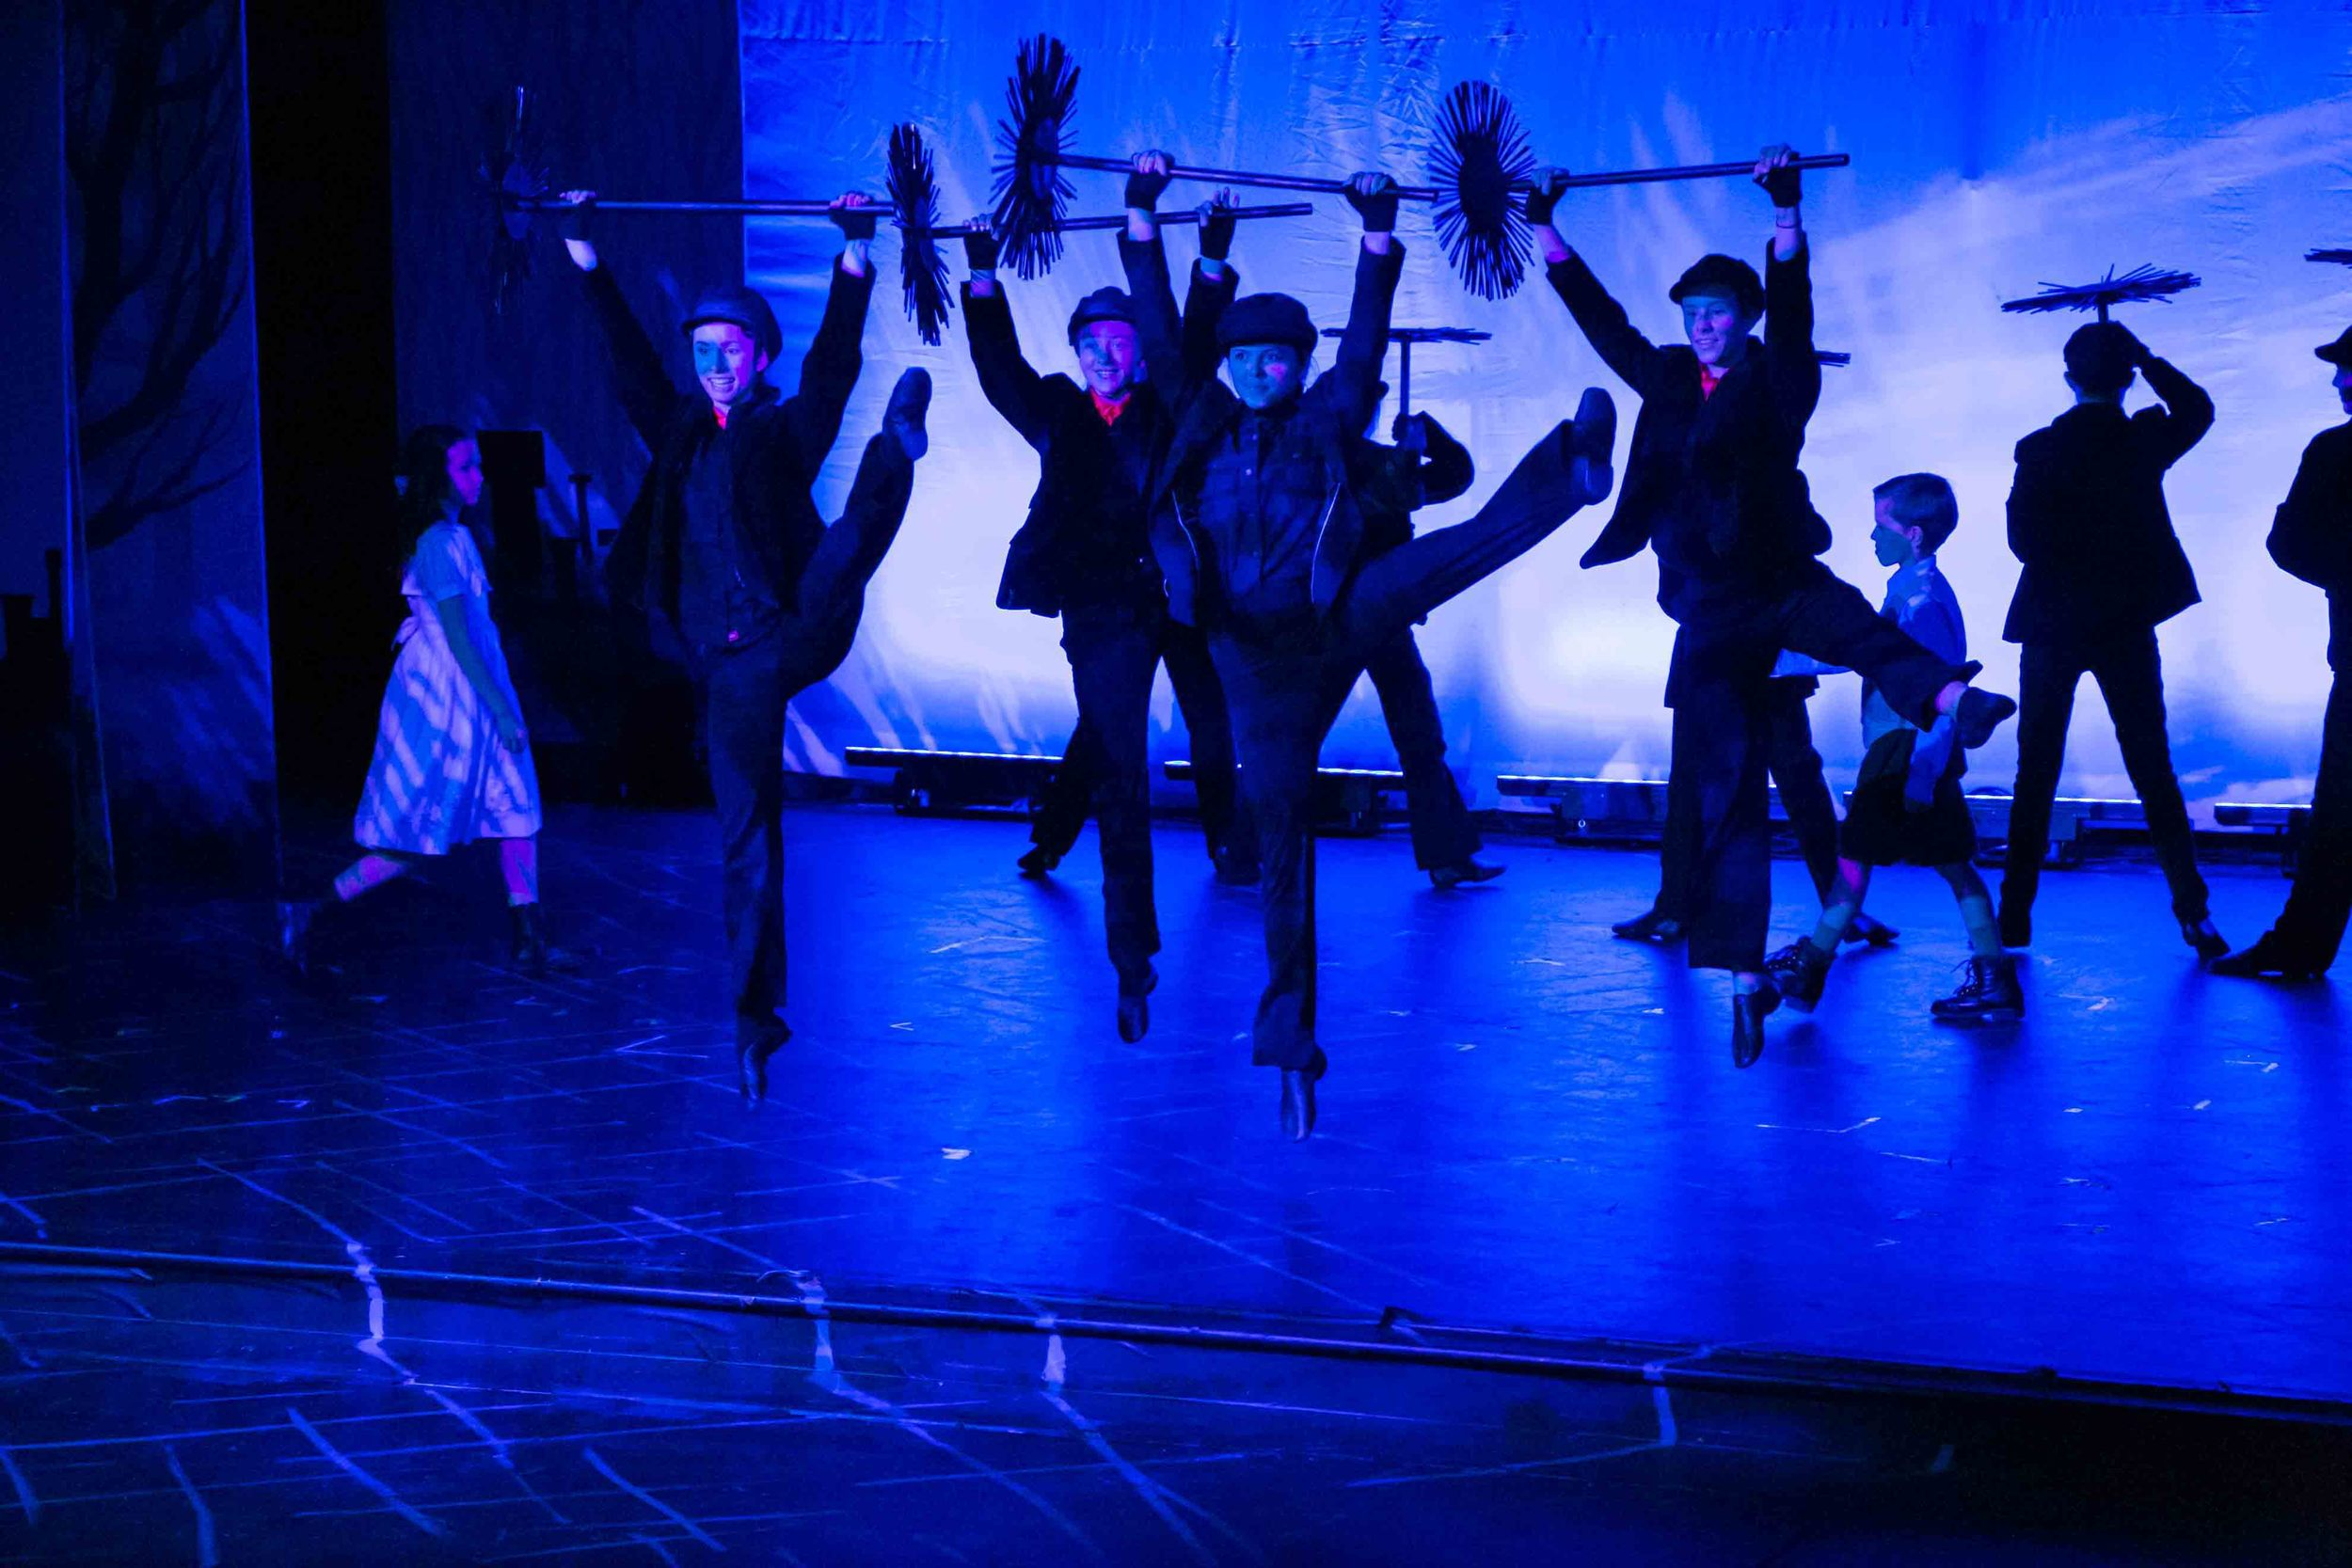 2-4-16 Mary Poppins Proper Cast 0315.jpg